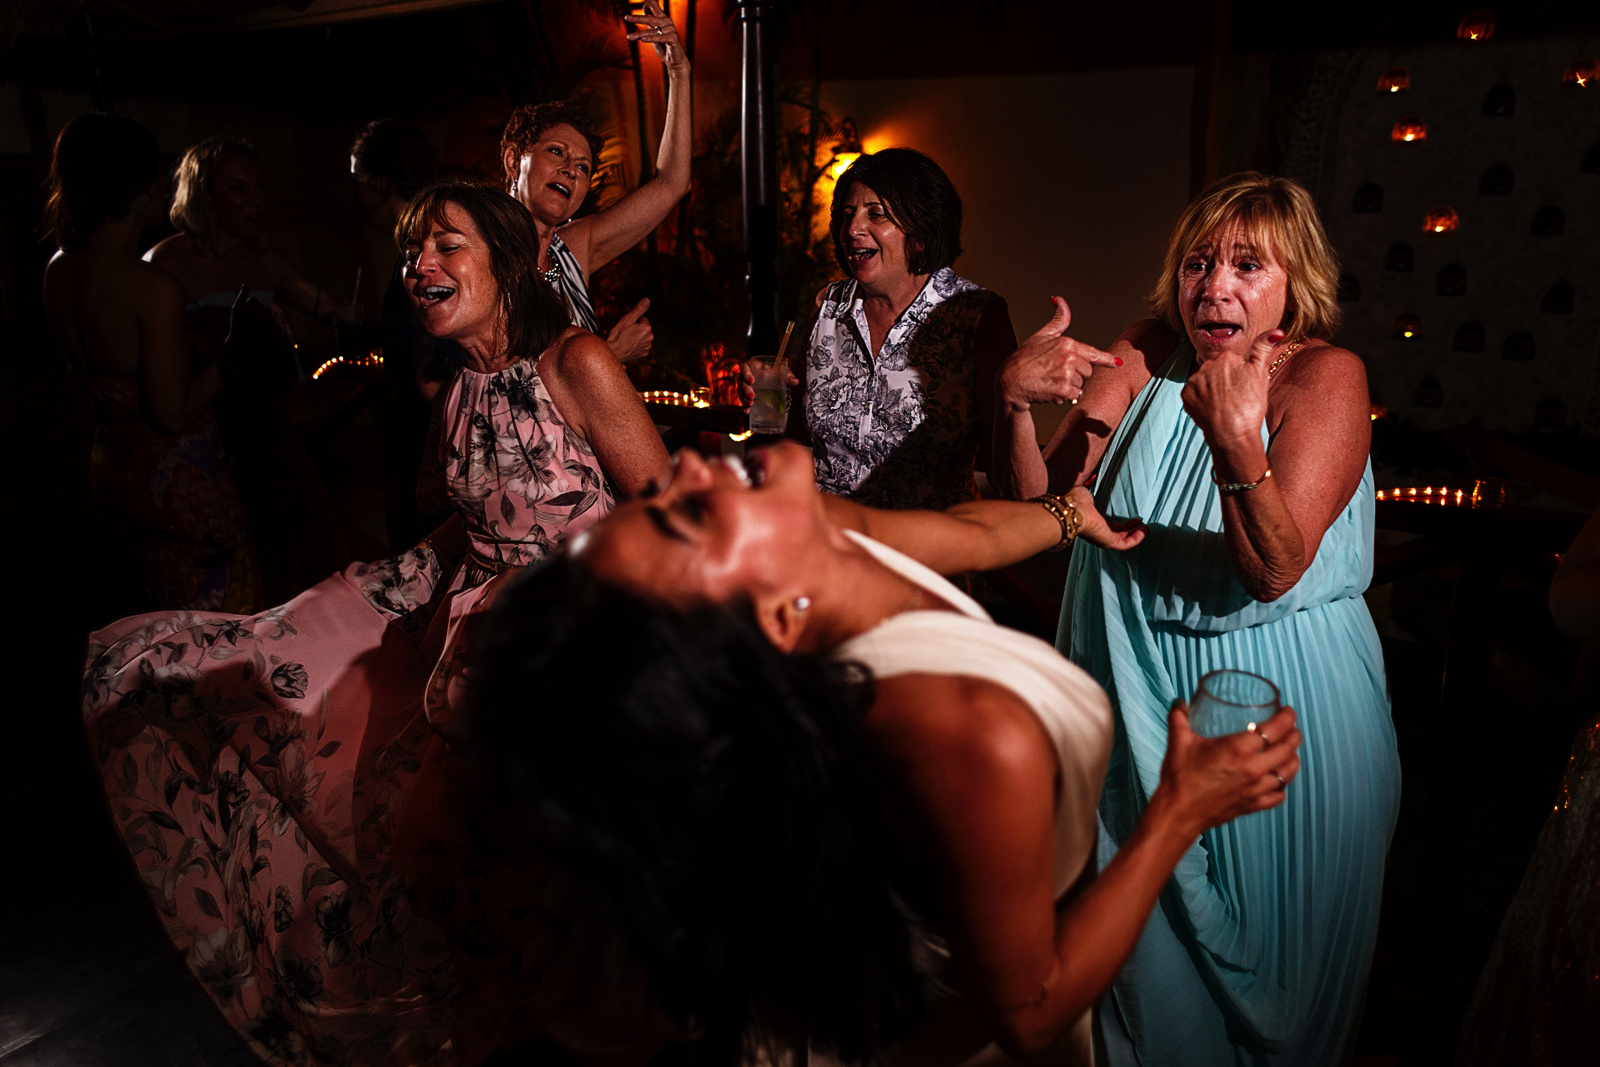 Female wedding guests all bringing their best moves at the dance floor